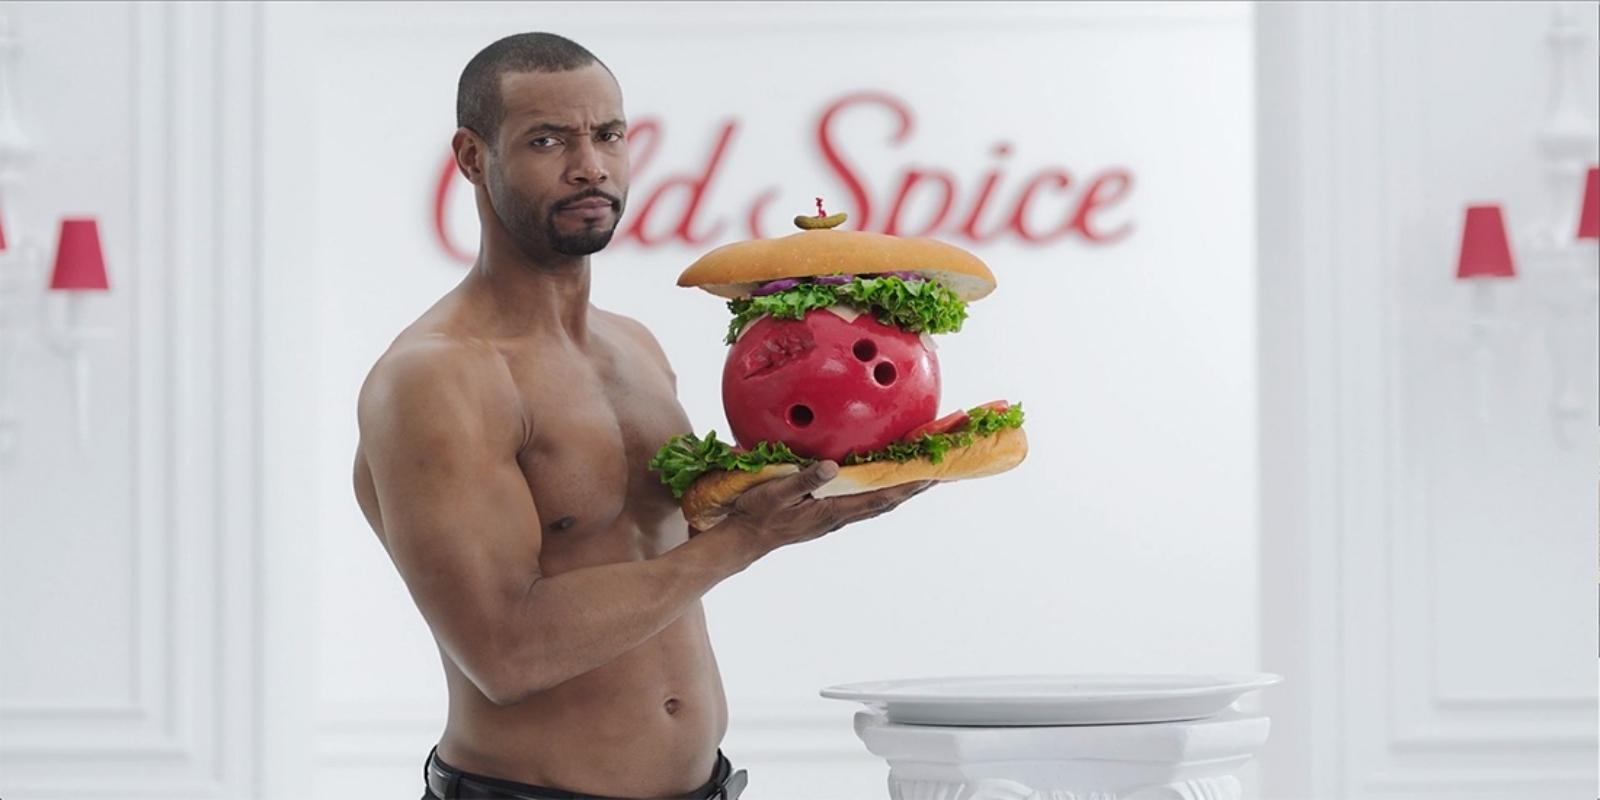 Old Spice - Internetervention - Work - Image - Featured